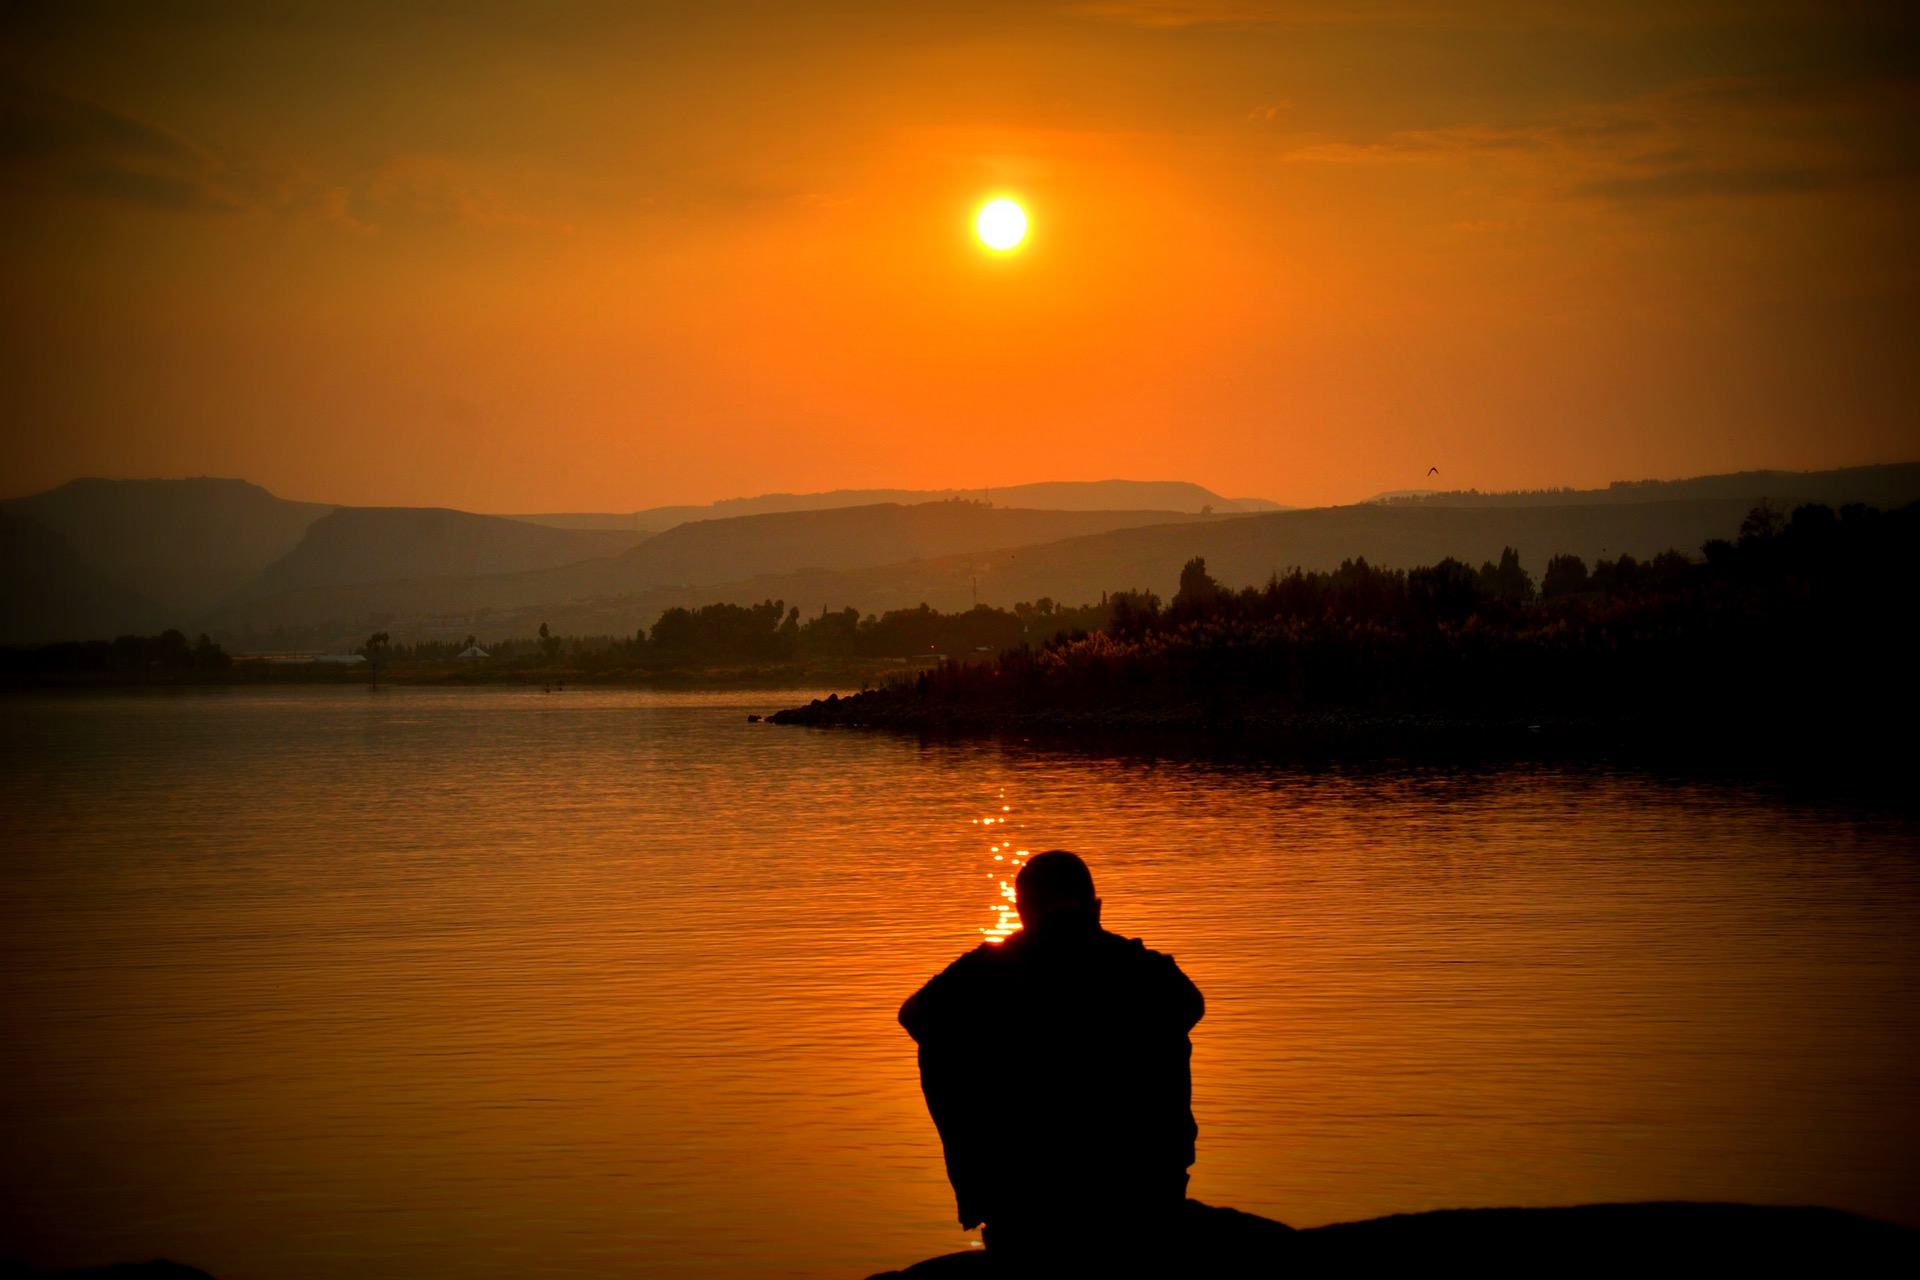 man sitting, looking at sunset. Represents PTSD and Addiction help